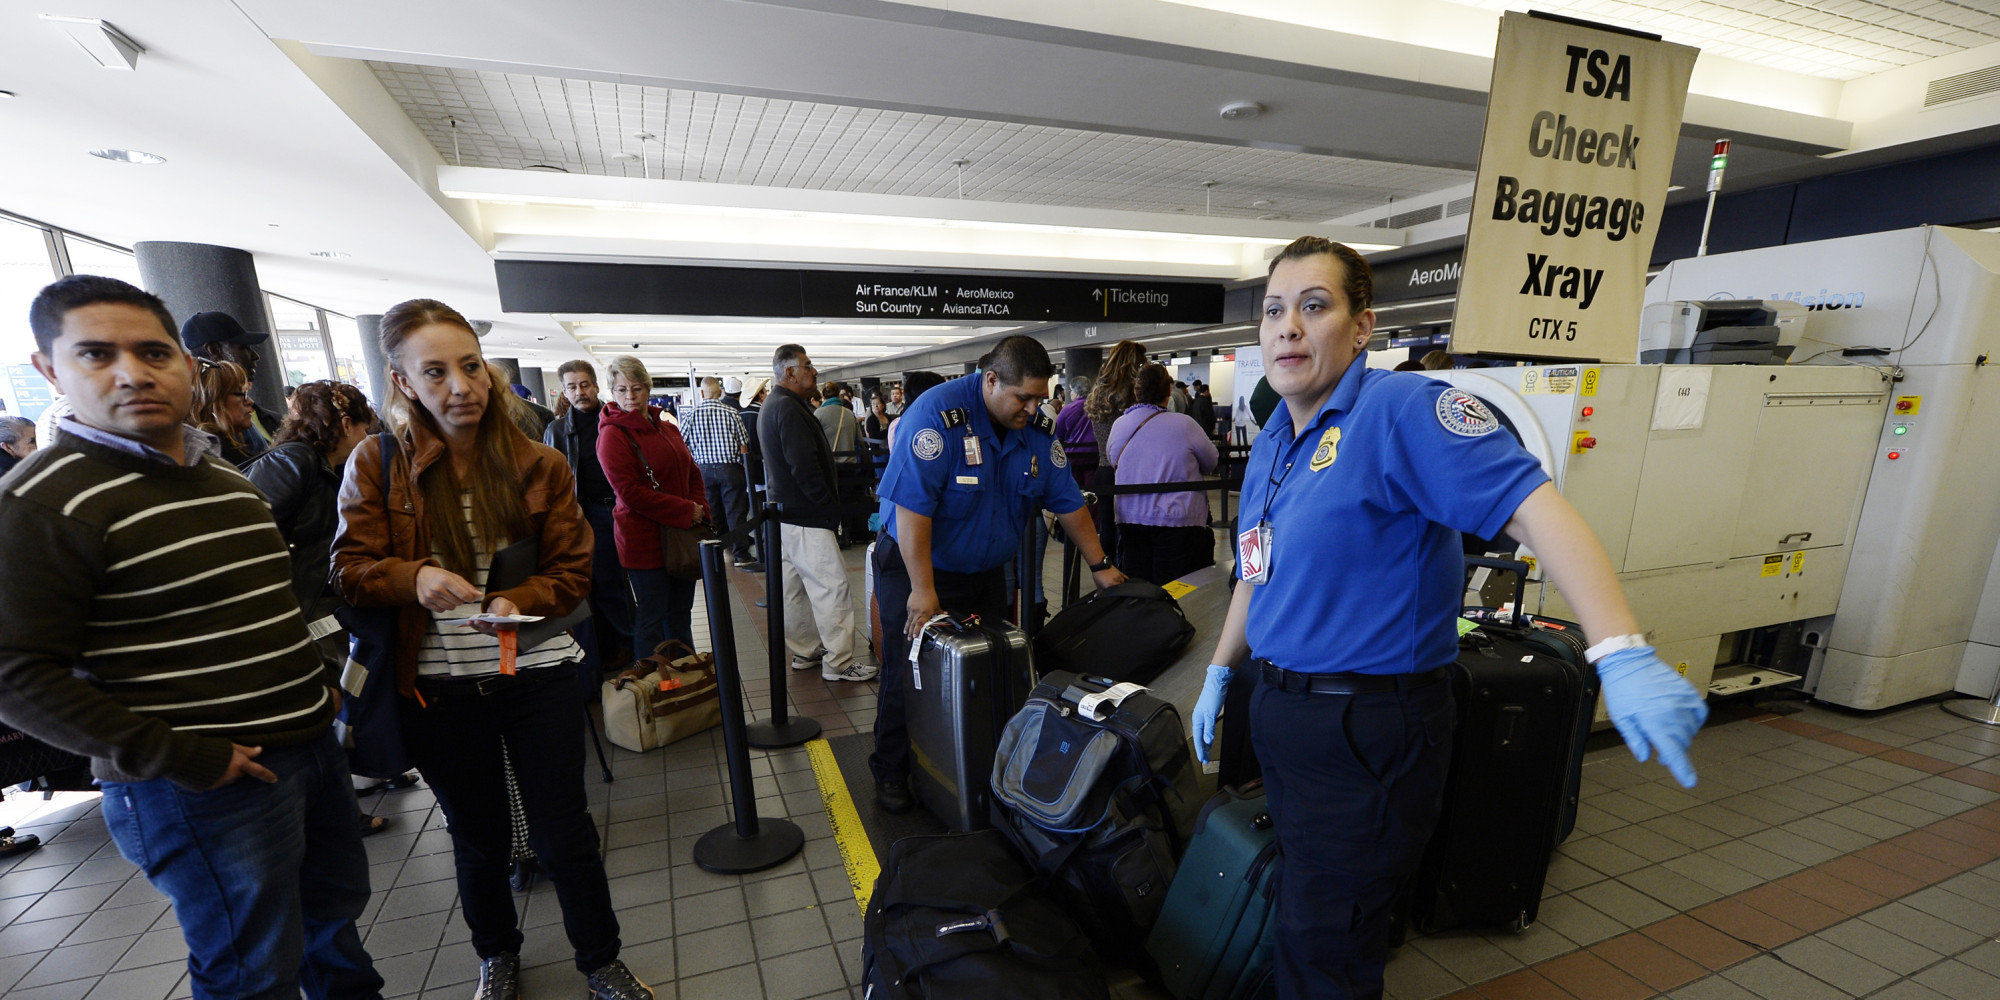 tsa fails 95 percent of airport security tests conducted